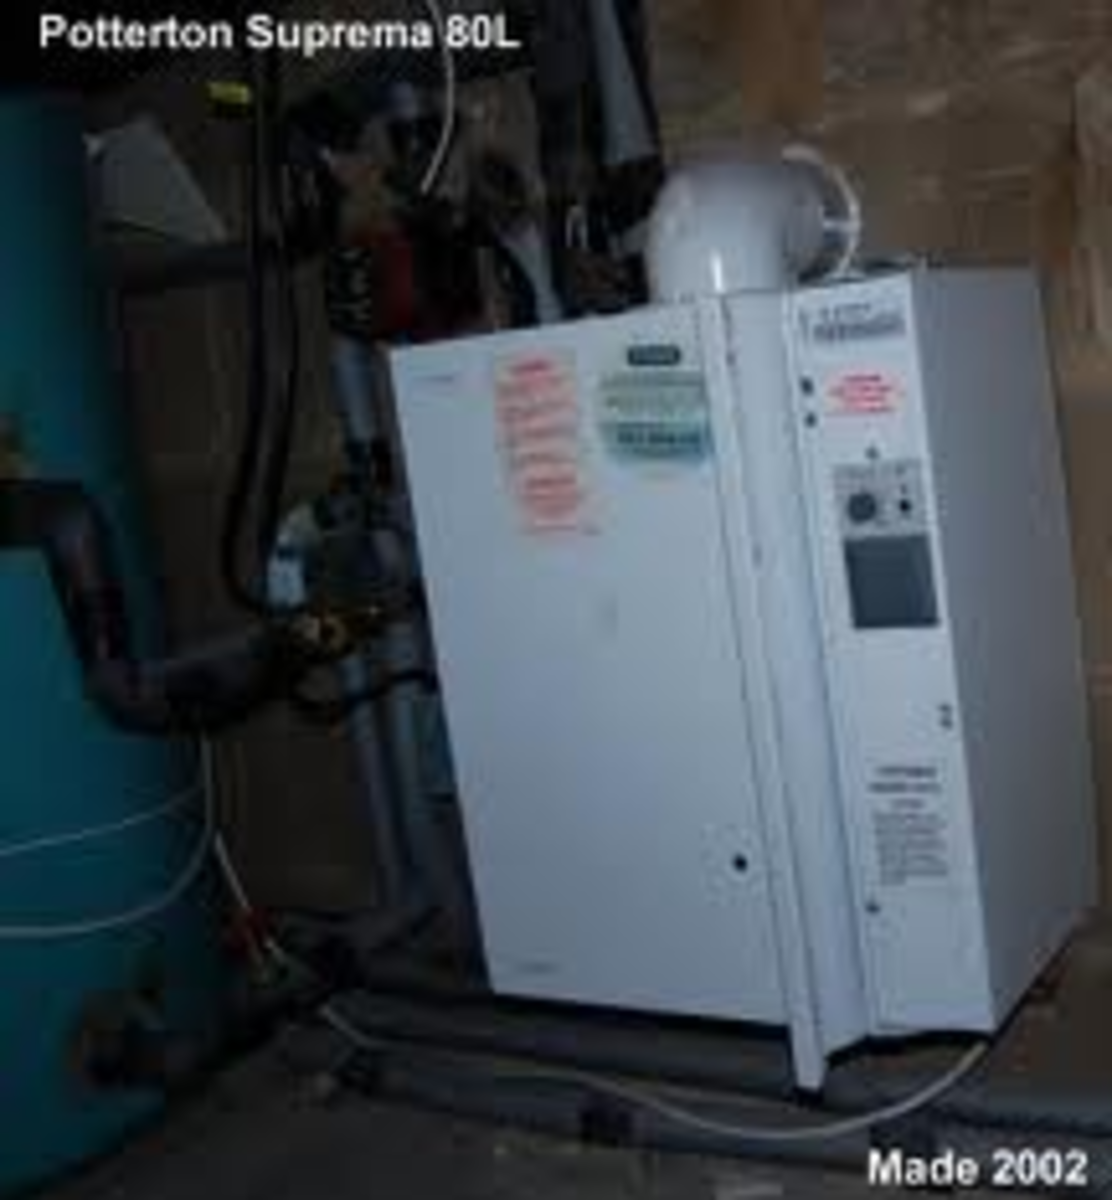 How To Repair Your Potterton Suprima Boiler.